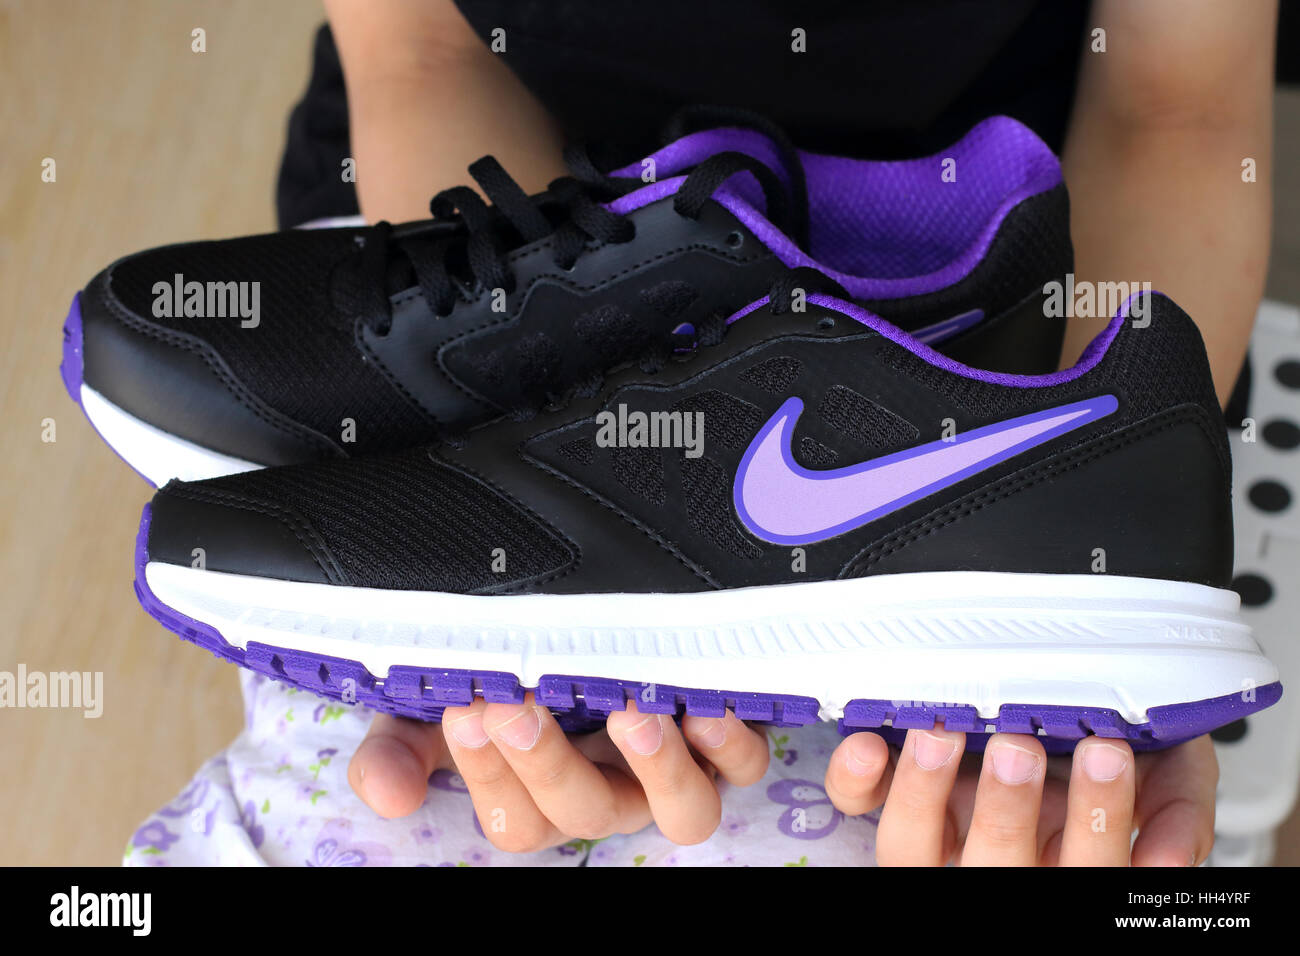 b1880fd97a92 Close up of Nike shoes Stock Photo  131031363 - Alamy